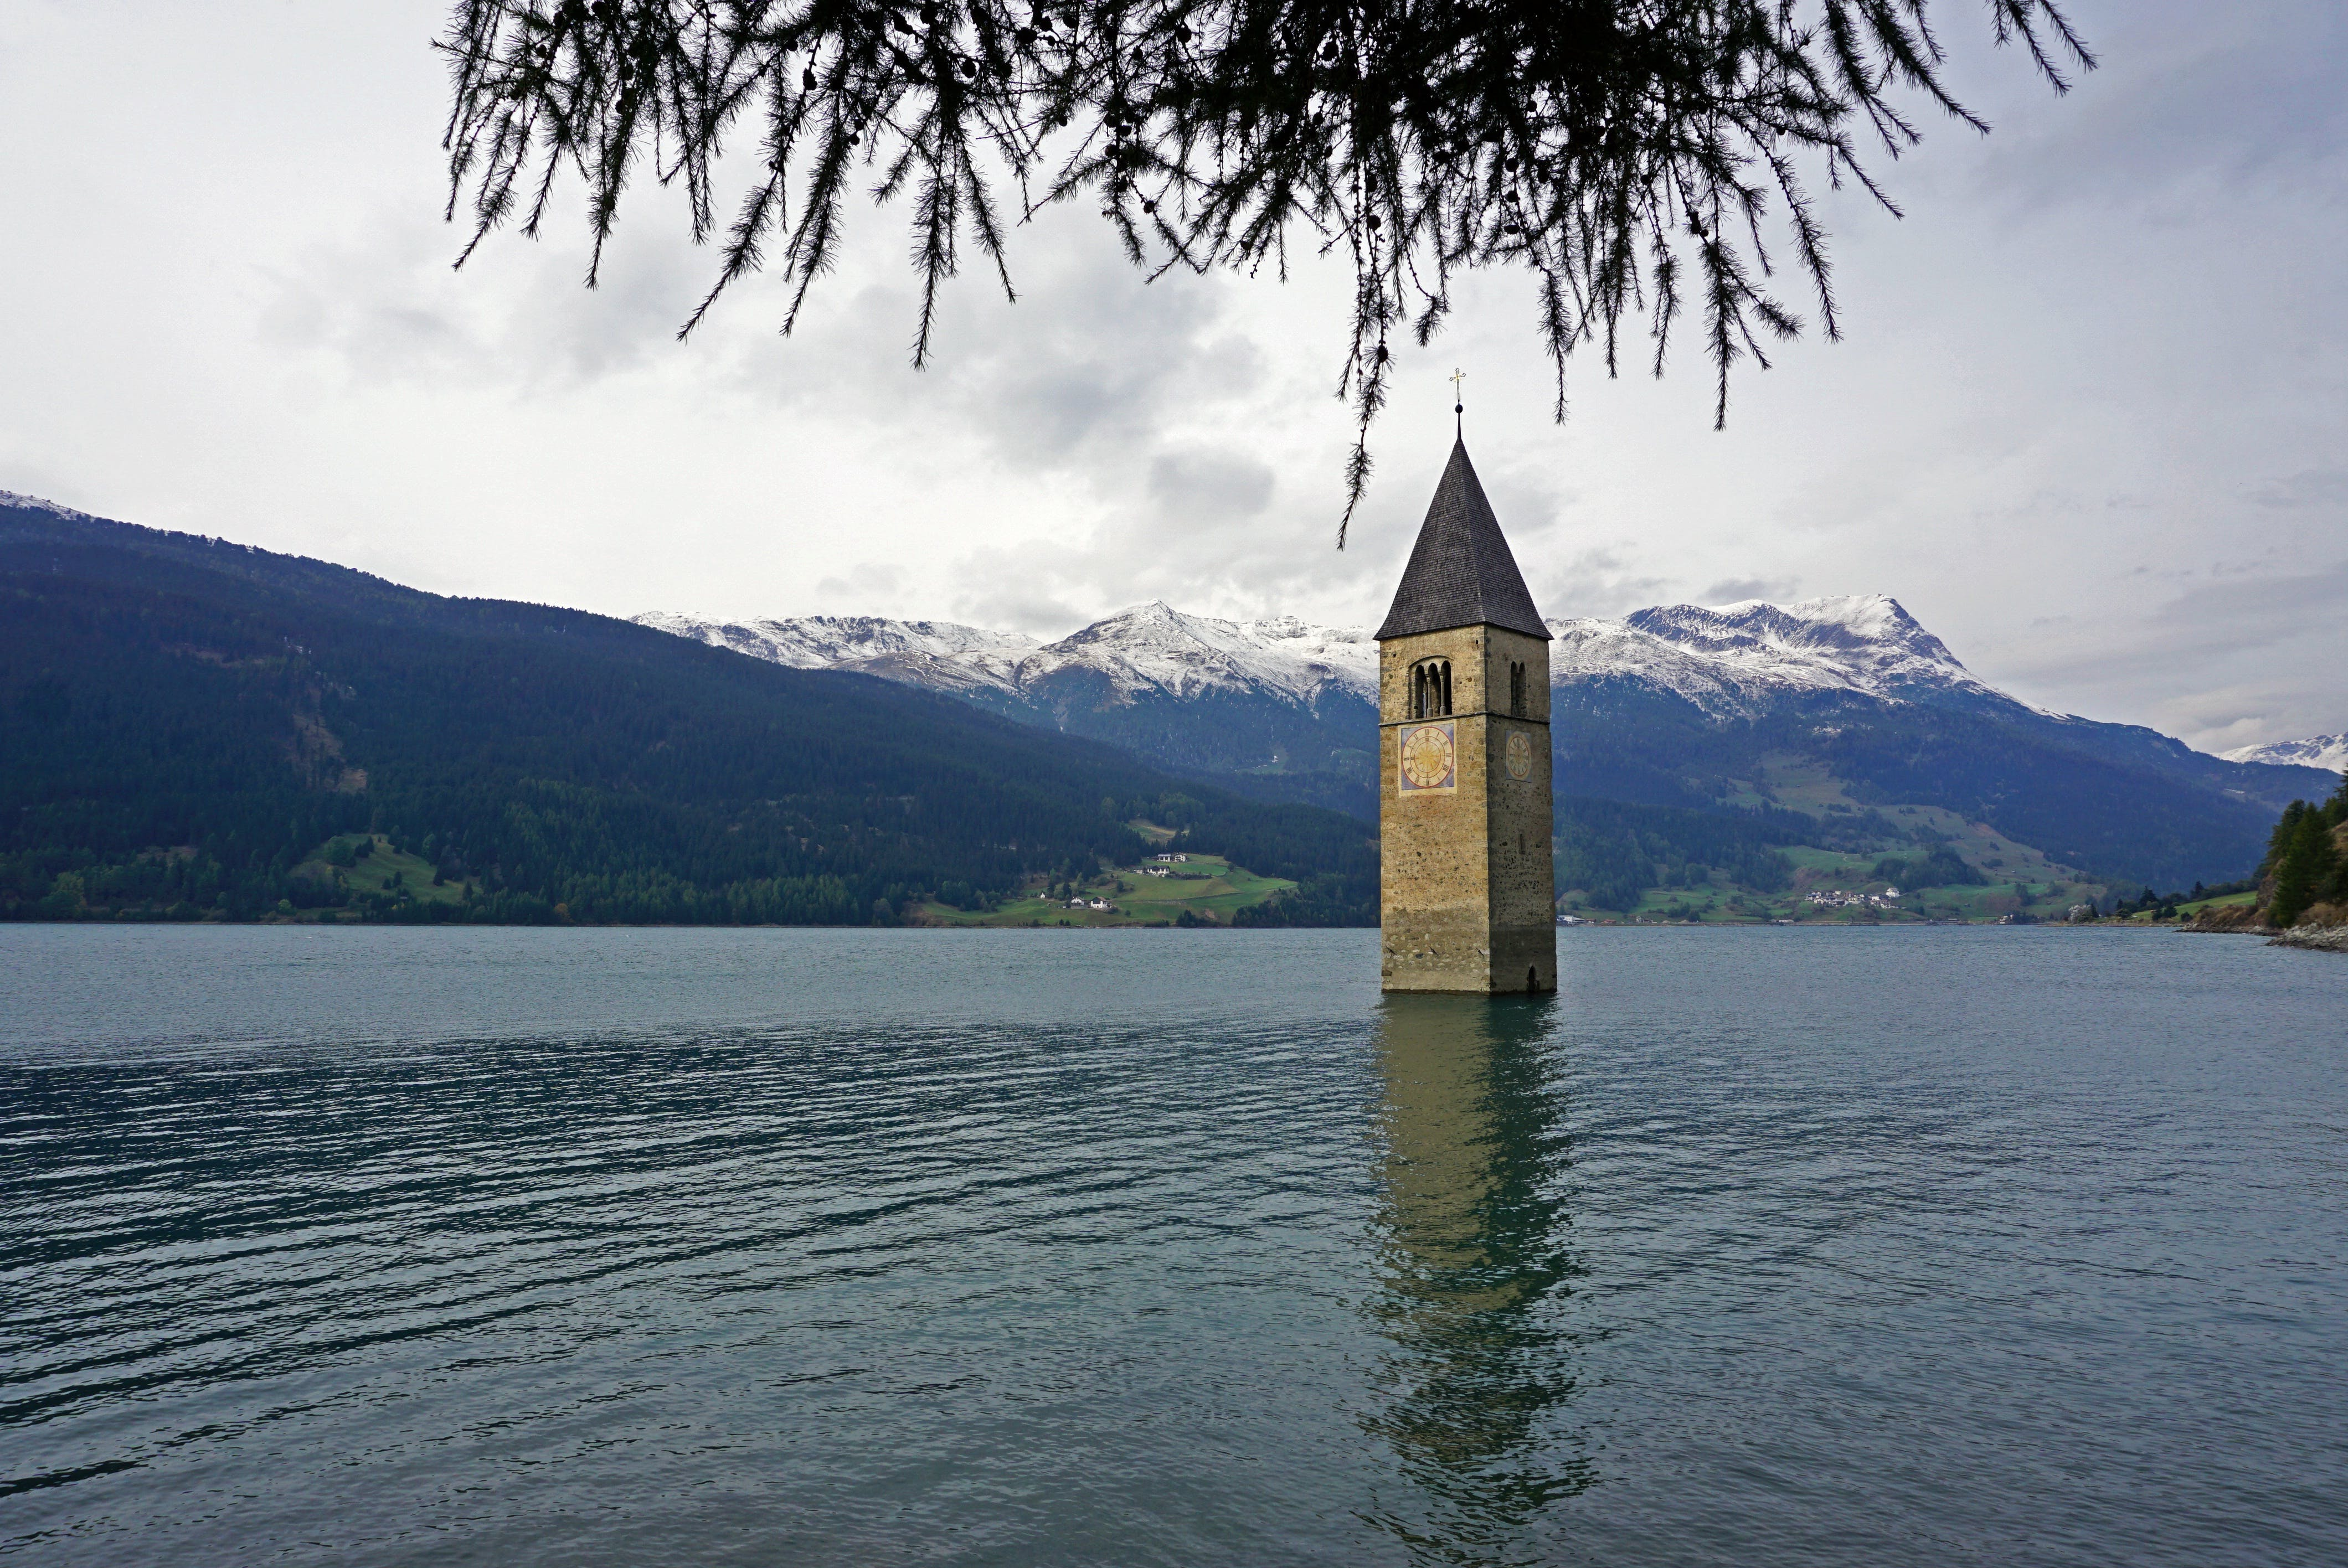 Gray Concrete Tower on Body of Water Under White Skies